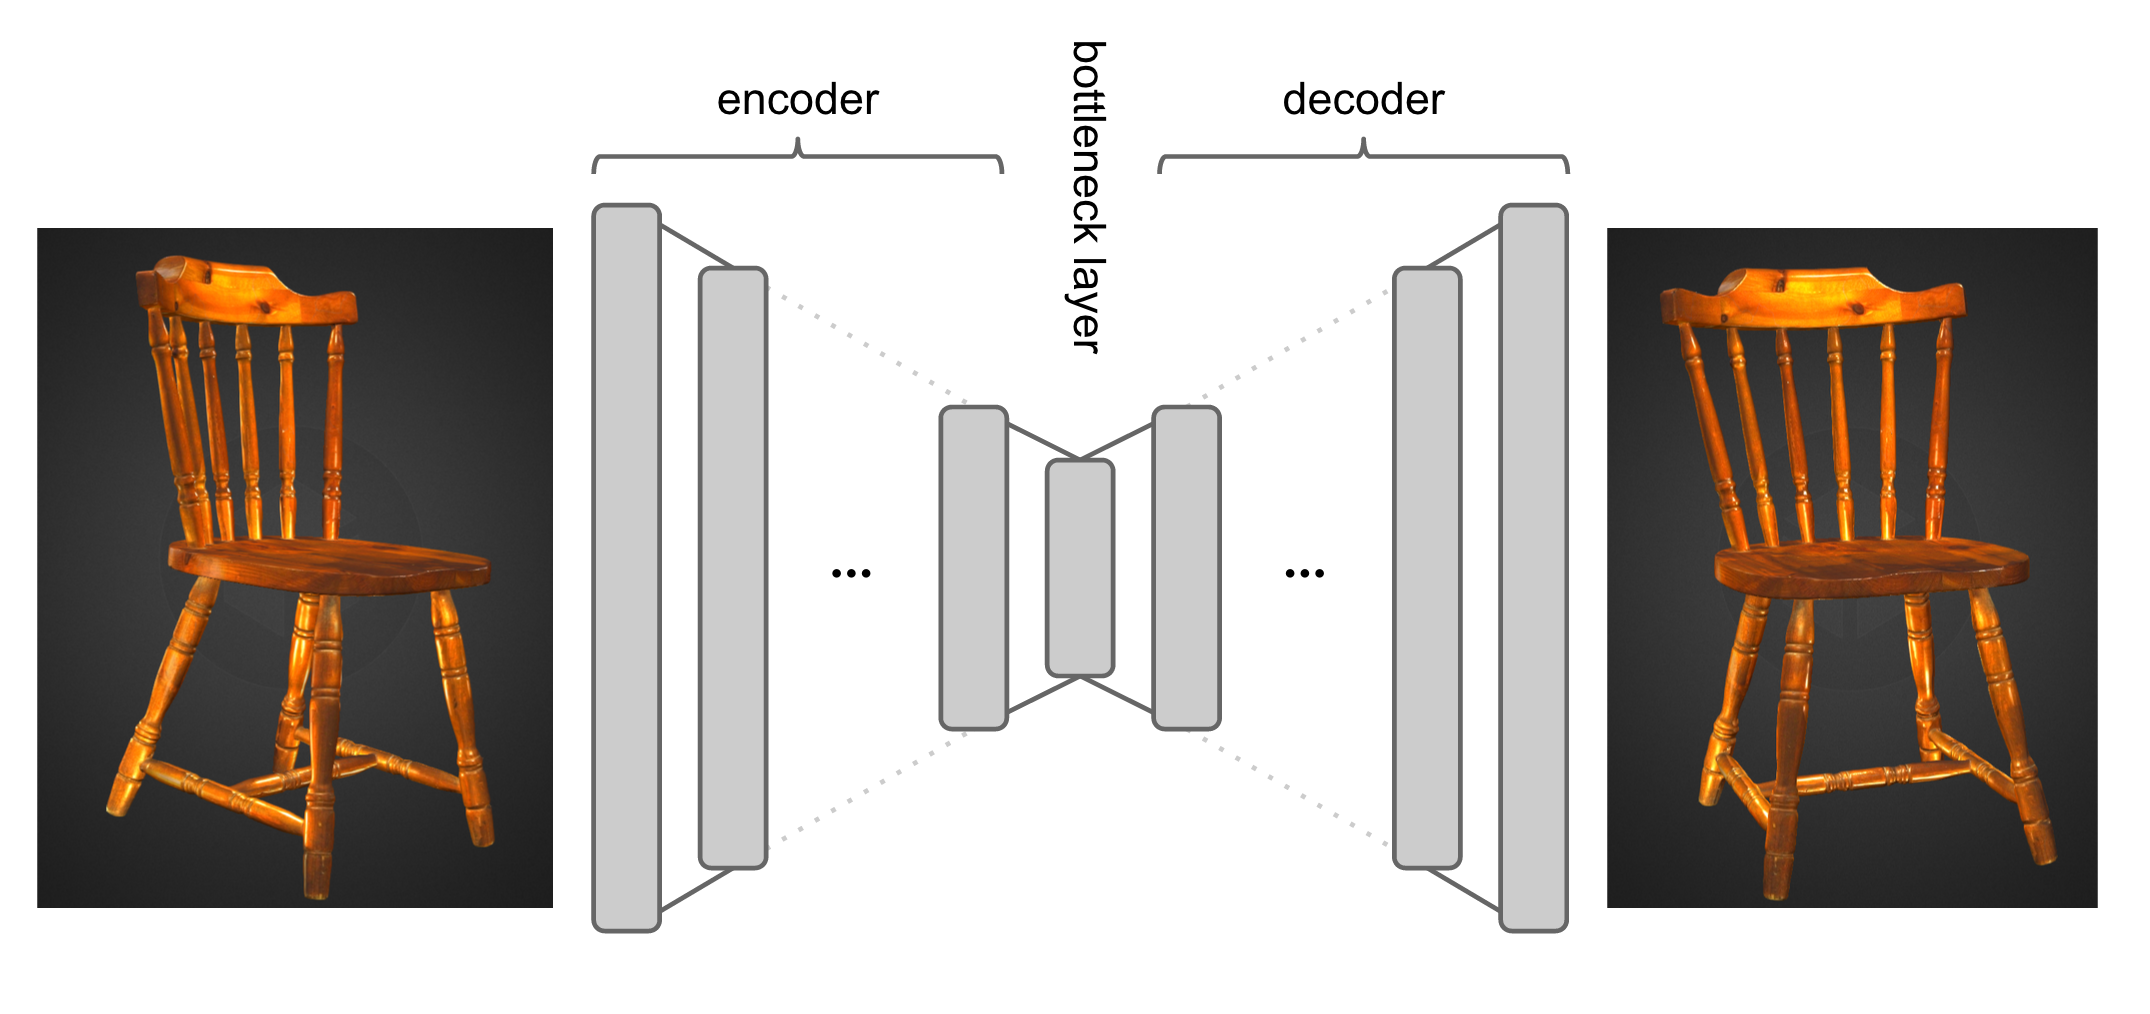 Figure illustrating the stereovision autoencoder. A network is trained to encode an image of a 3D object, and then to decode a 3D rotated version of the same object.